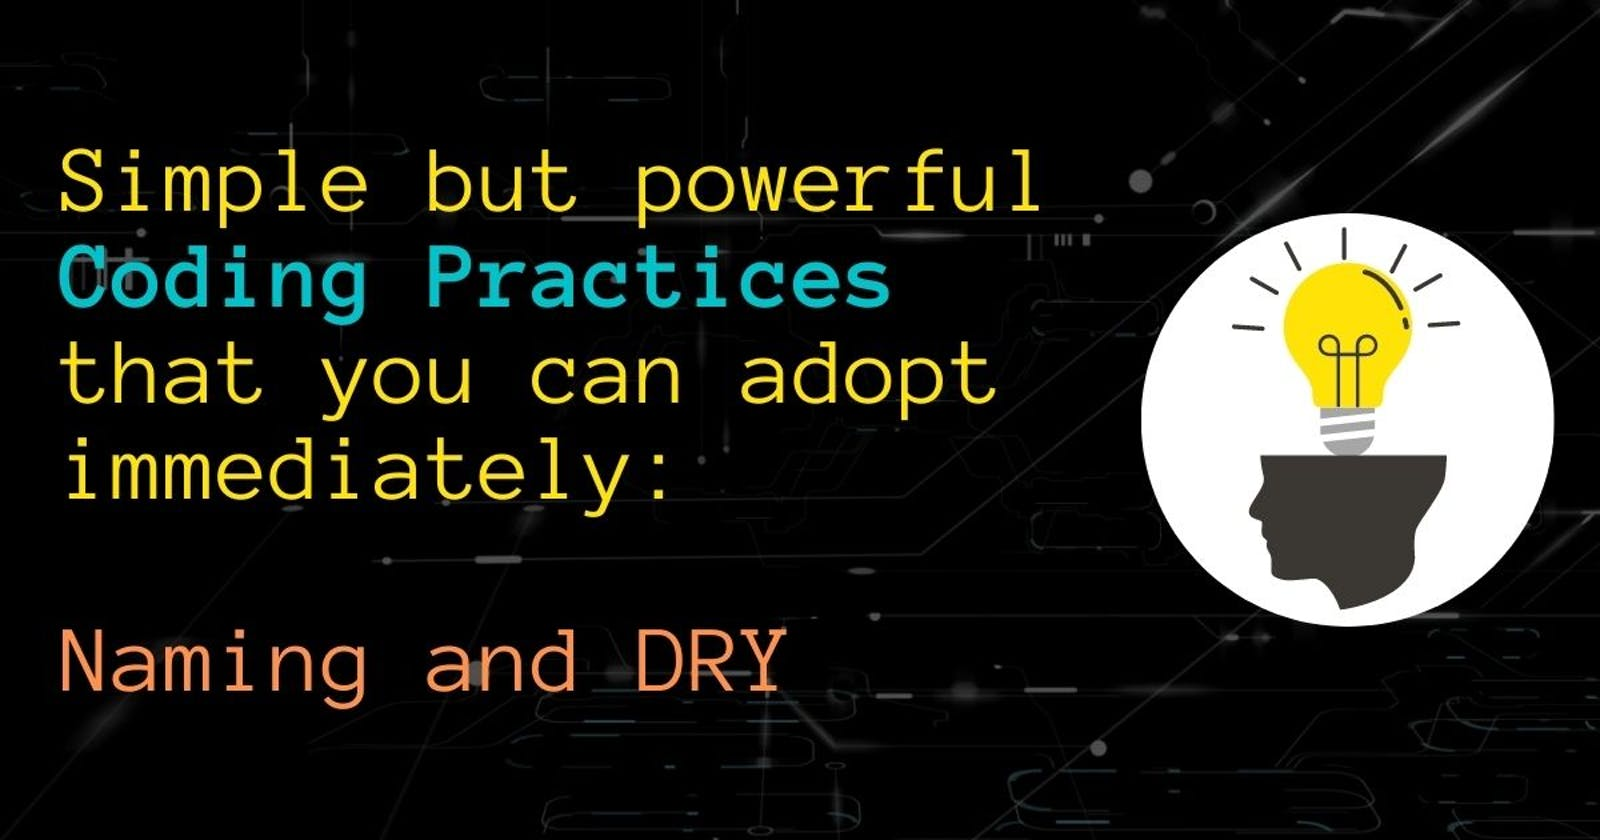 Simple but powerful Coding Practices that you can adopt immediately: Naming and DRY